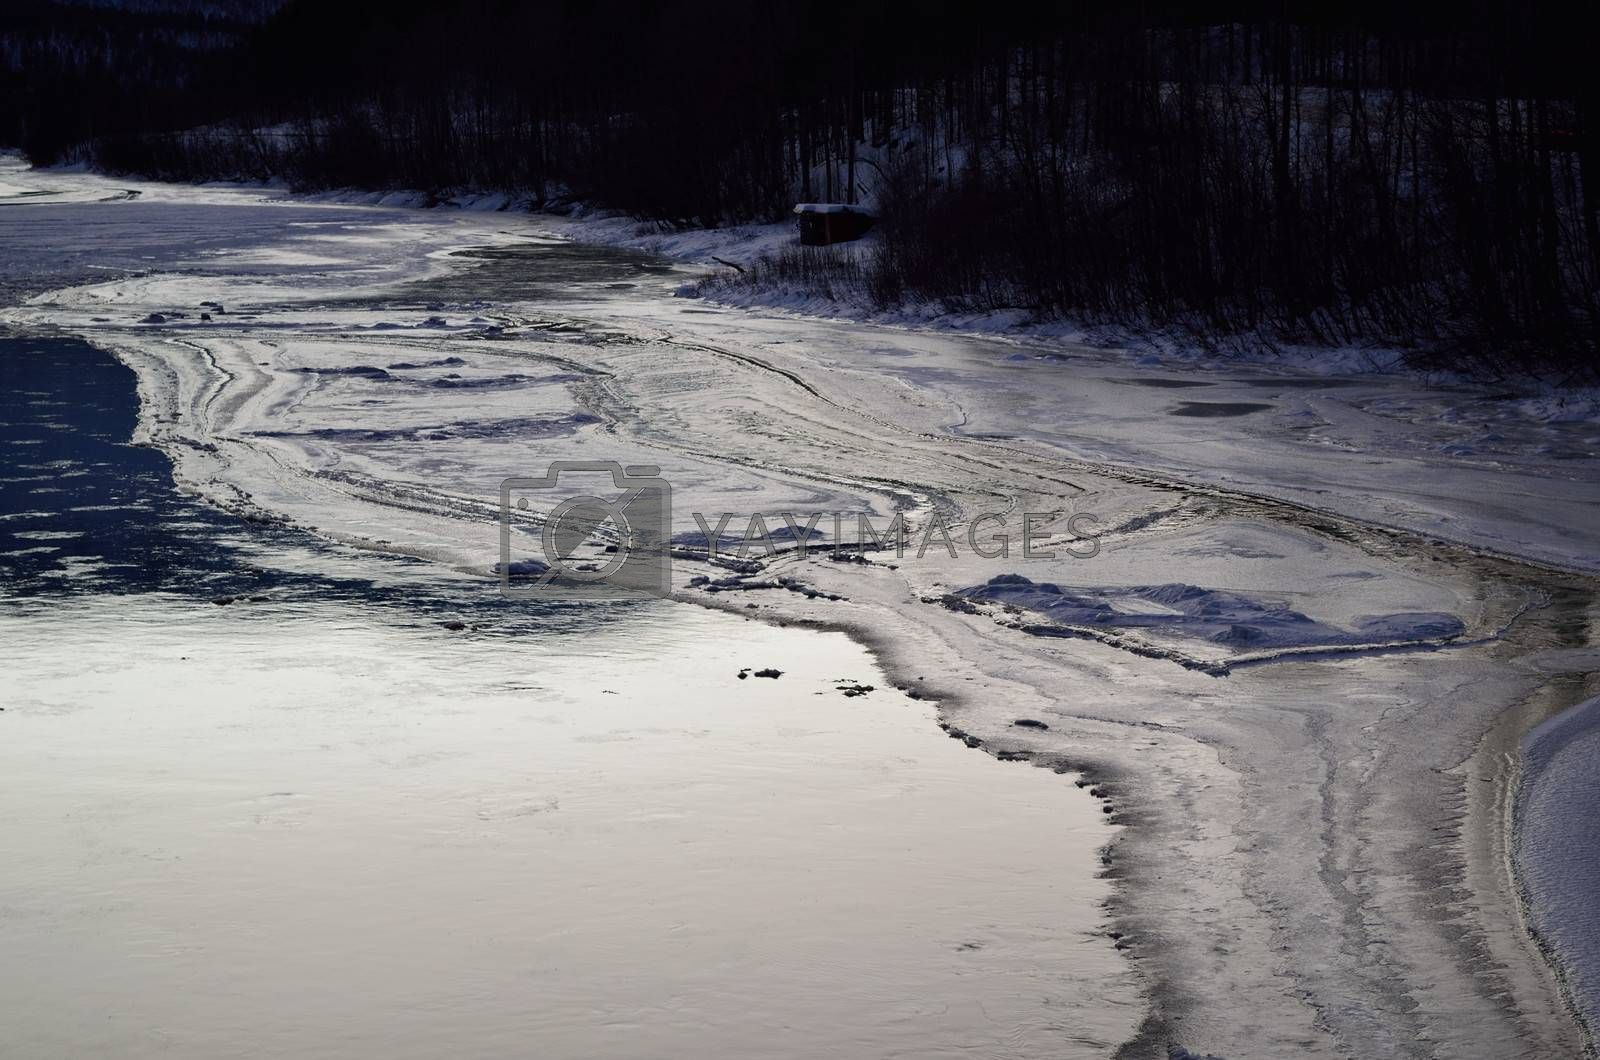 Royalty free image of beautiful icy river stream in wintertime by Finephotoworks